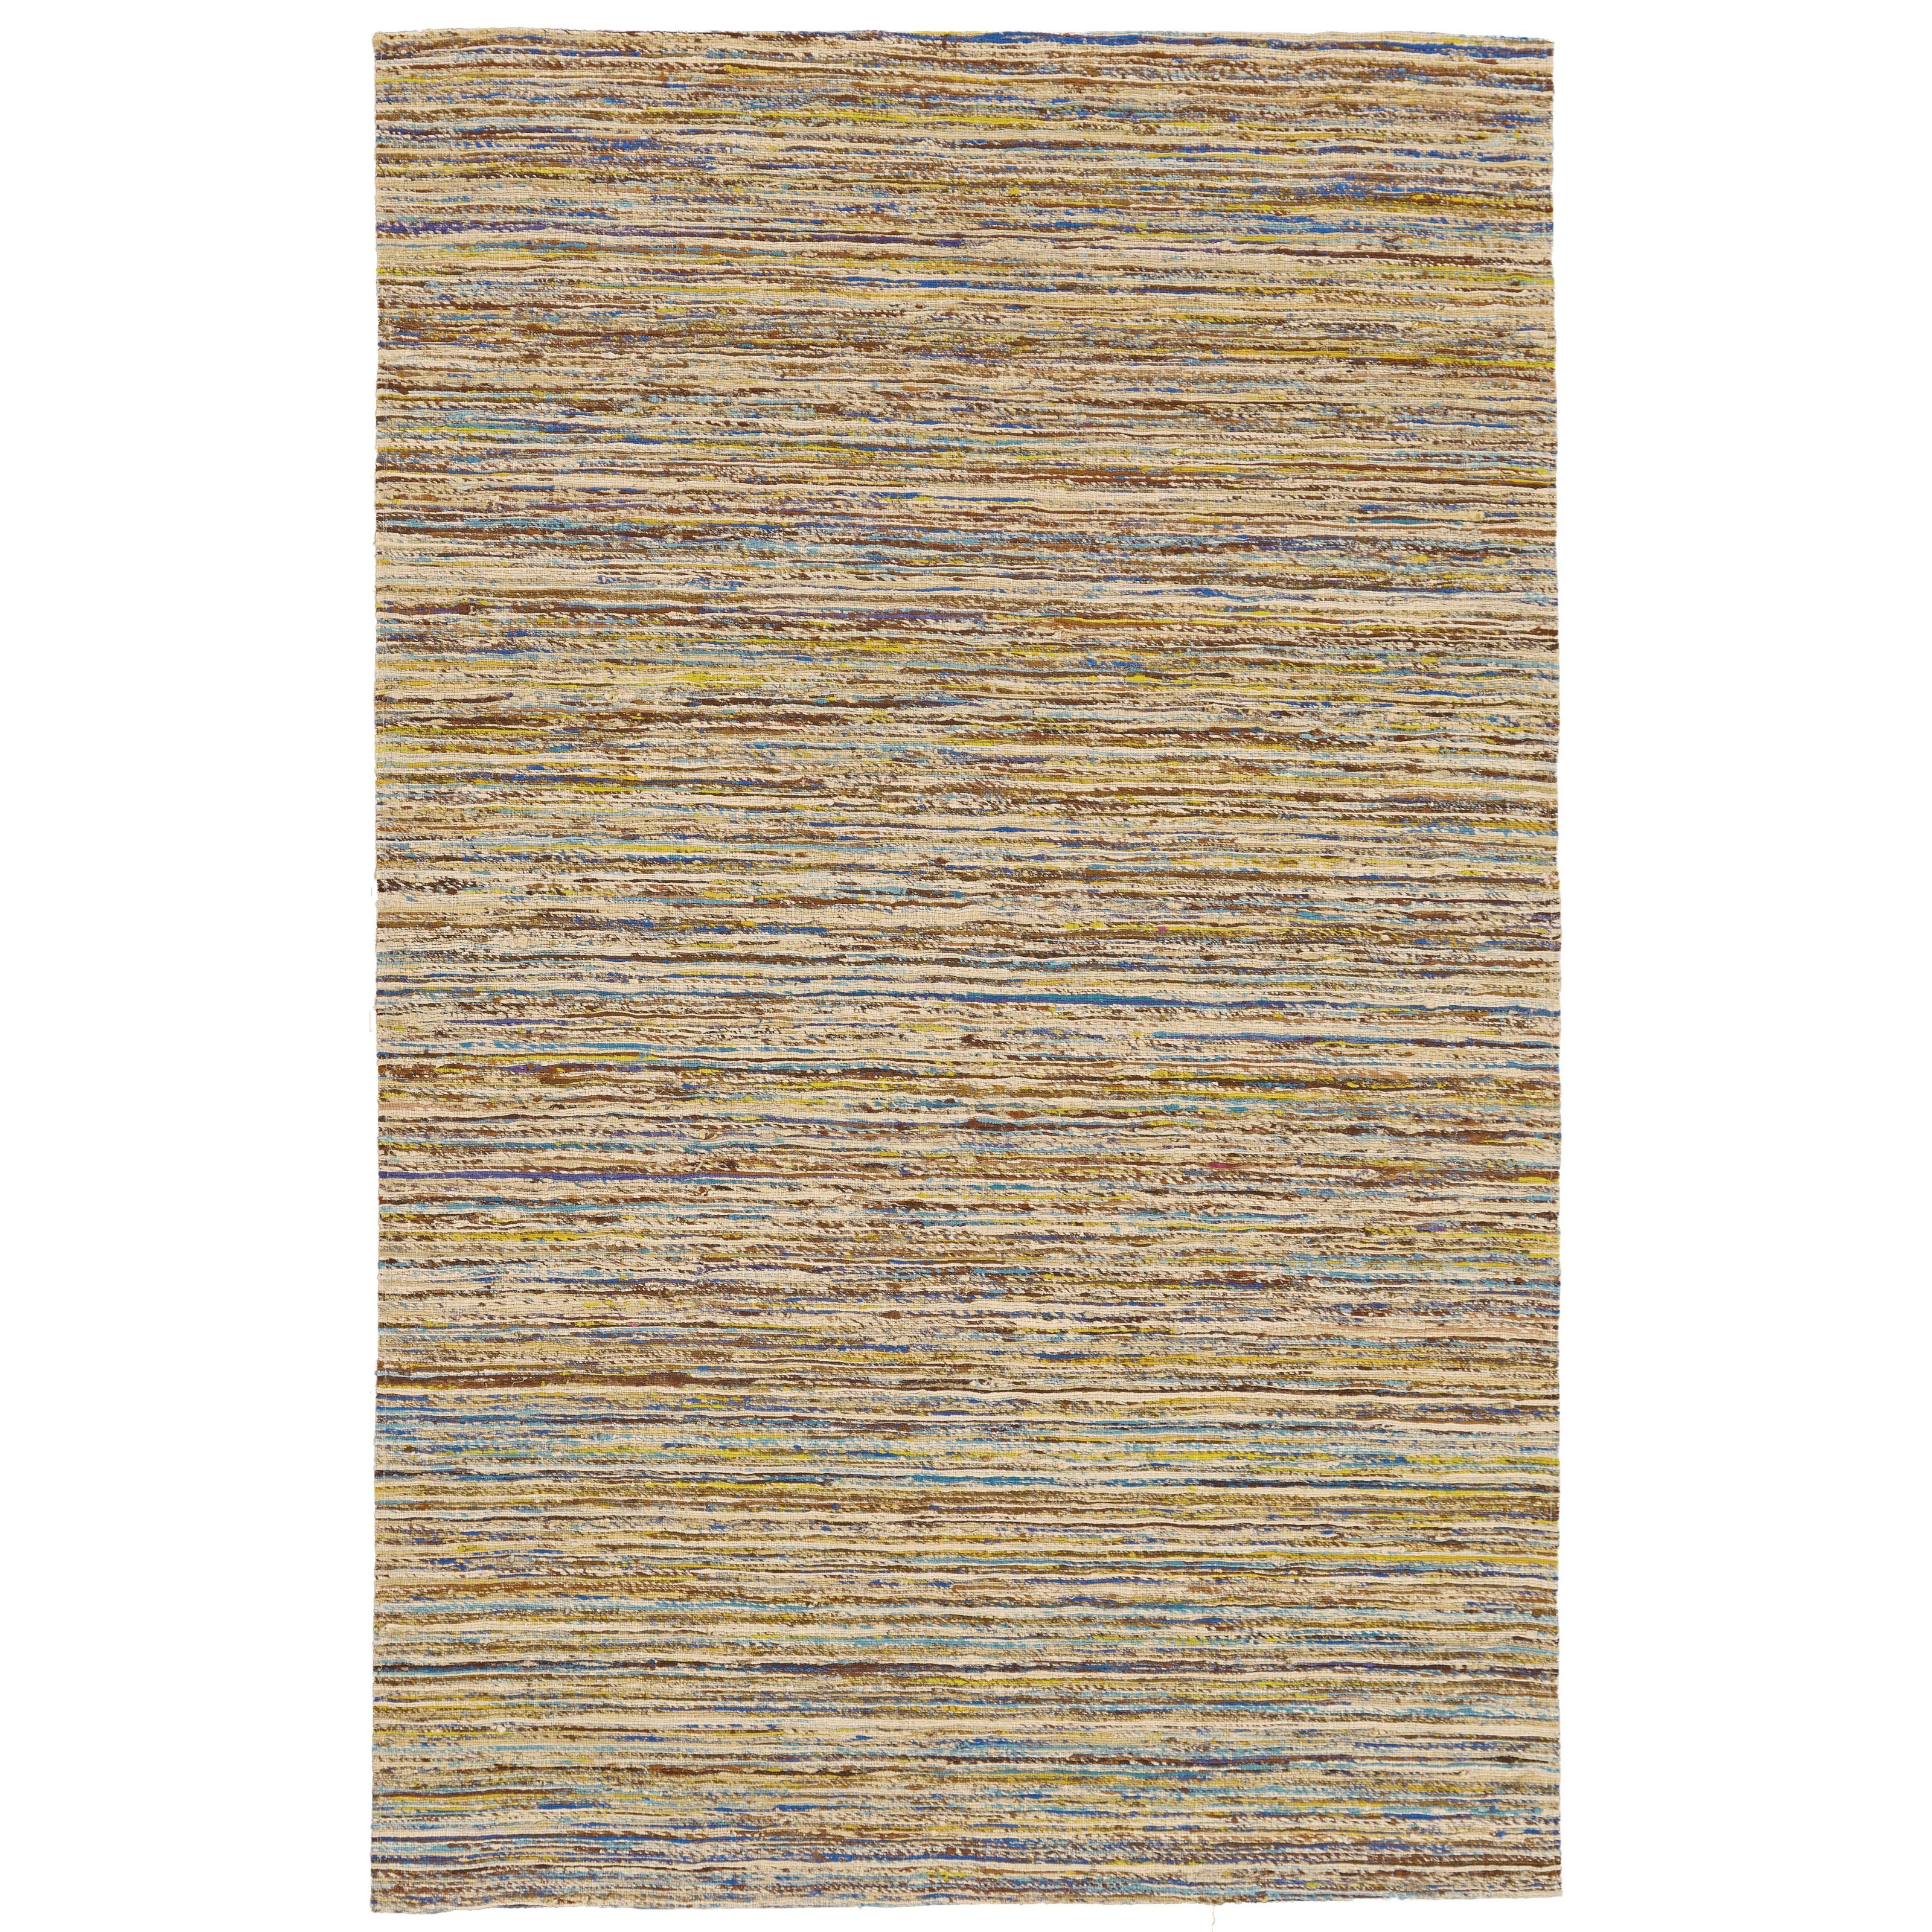 Arushi Teal/Beige 8' X 11' Area Rug by Feizy Rugs at Sprintz Furniture